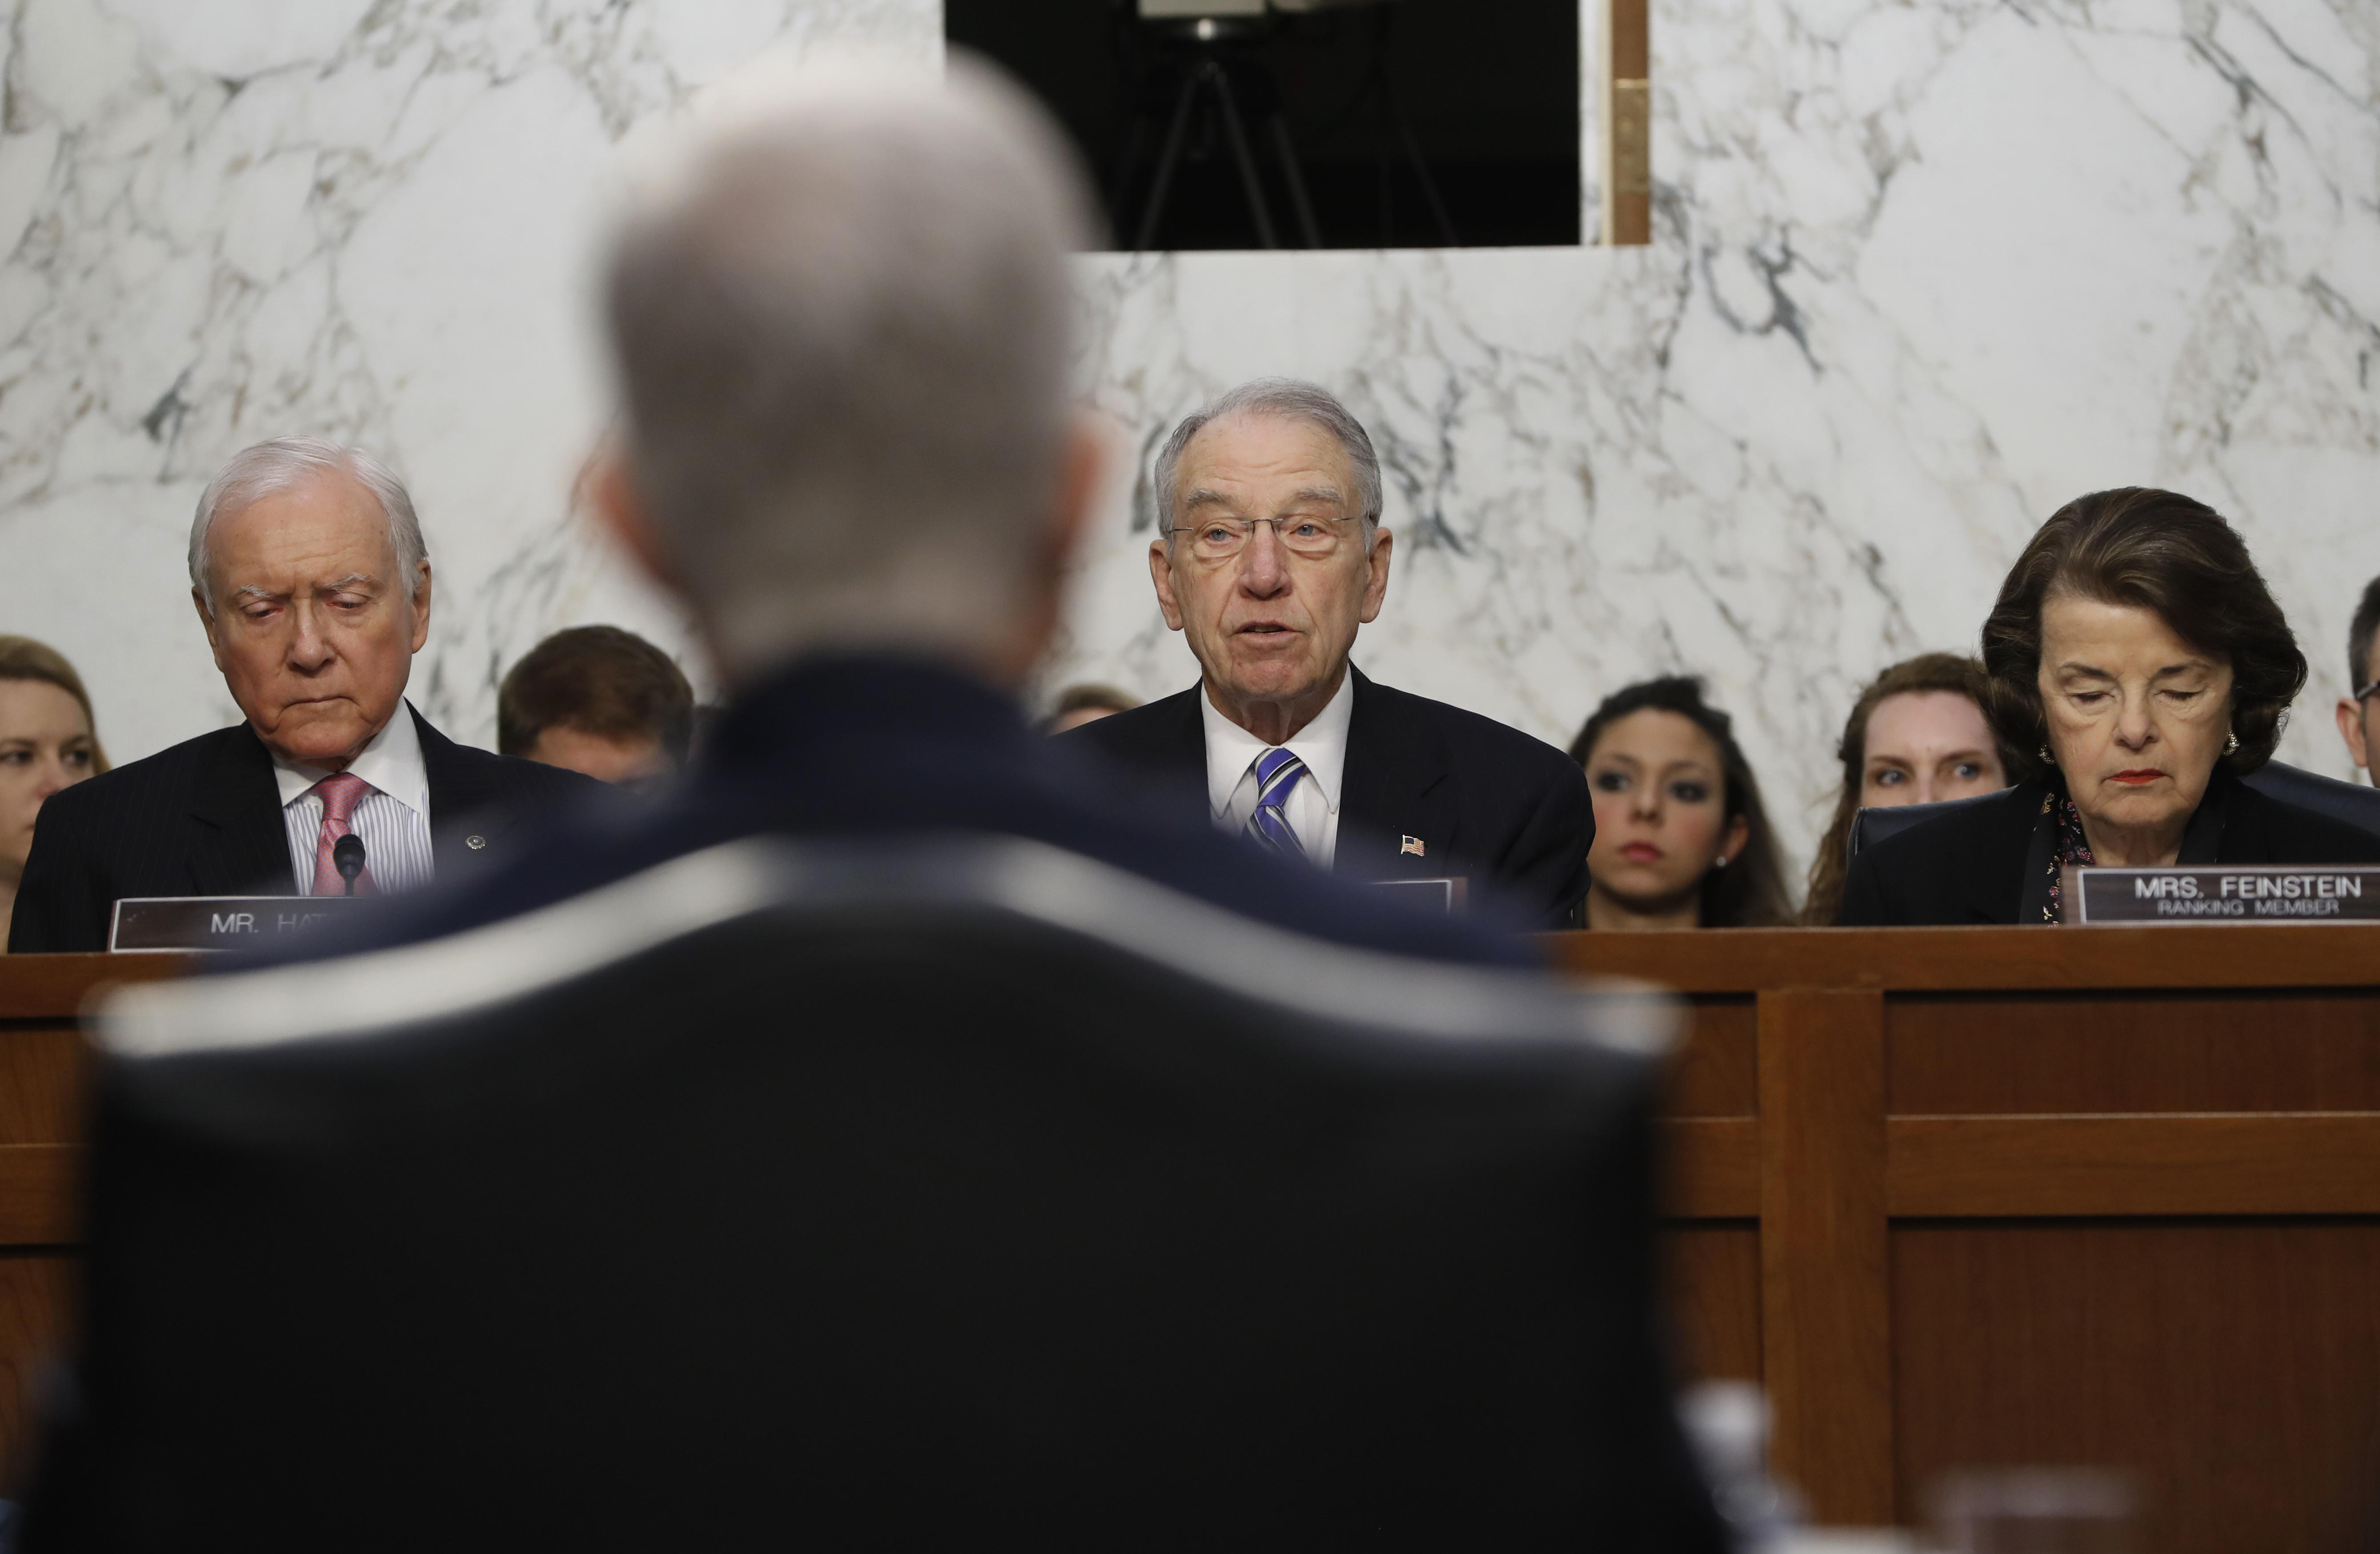 Supreme Court Justice nominee Neil Gorsuch back to camera listens as Senate Judiciary Committee  sc 1 st  Washington Times & Patrick Leahy - Bio News Photos - Washington Times 25forcollege.com